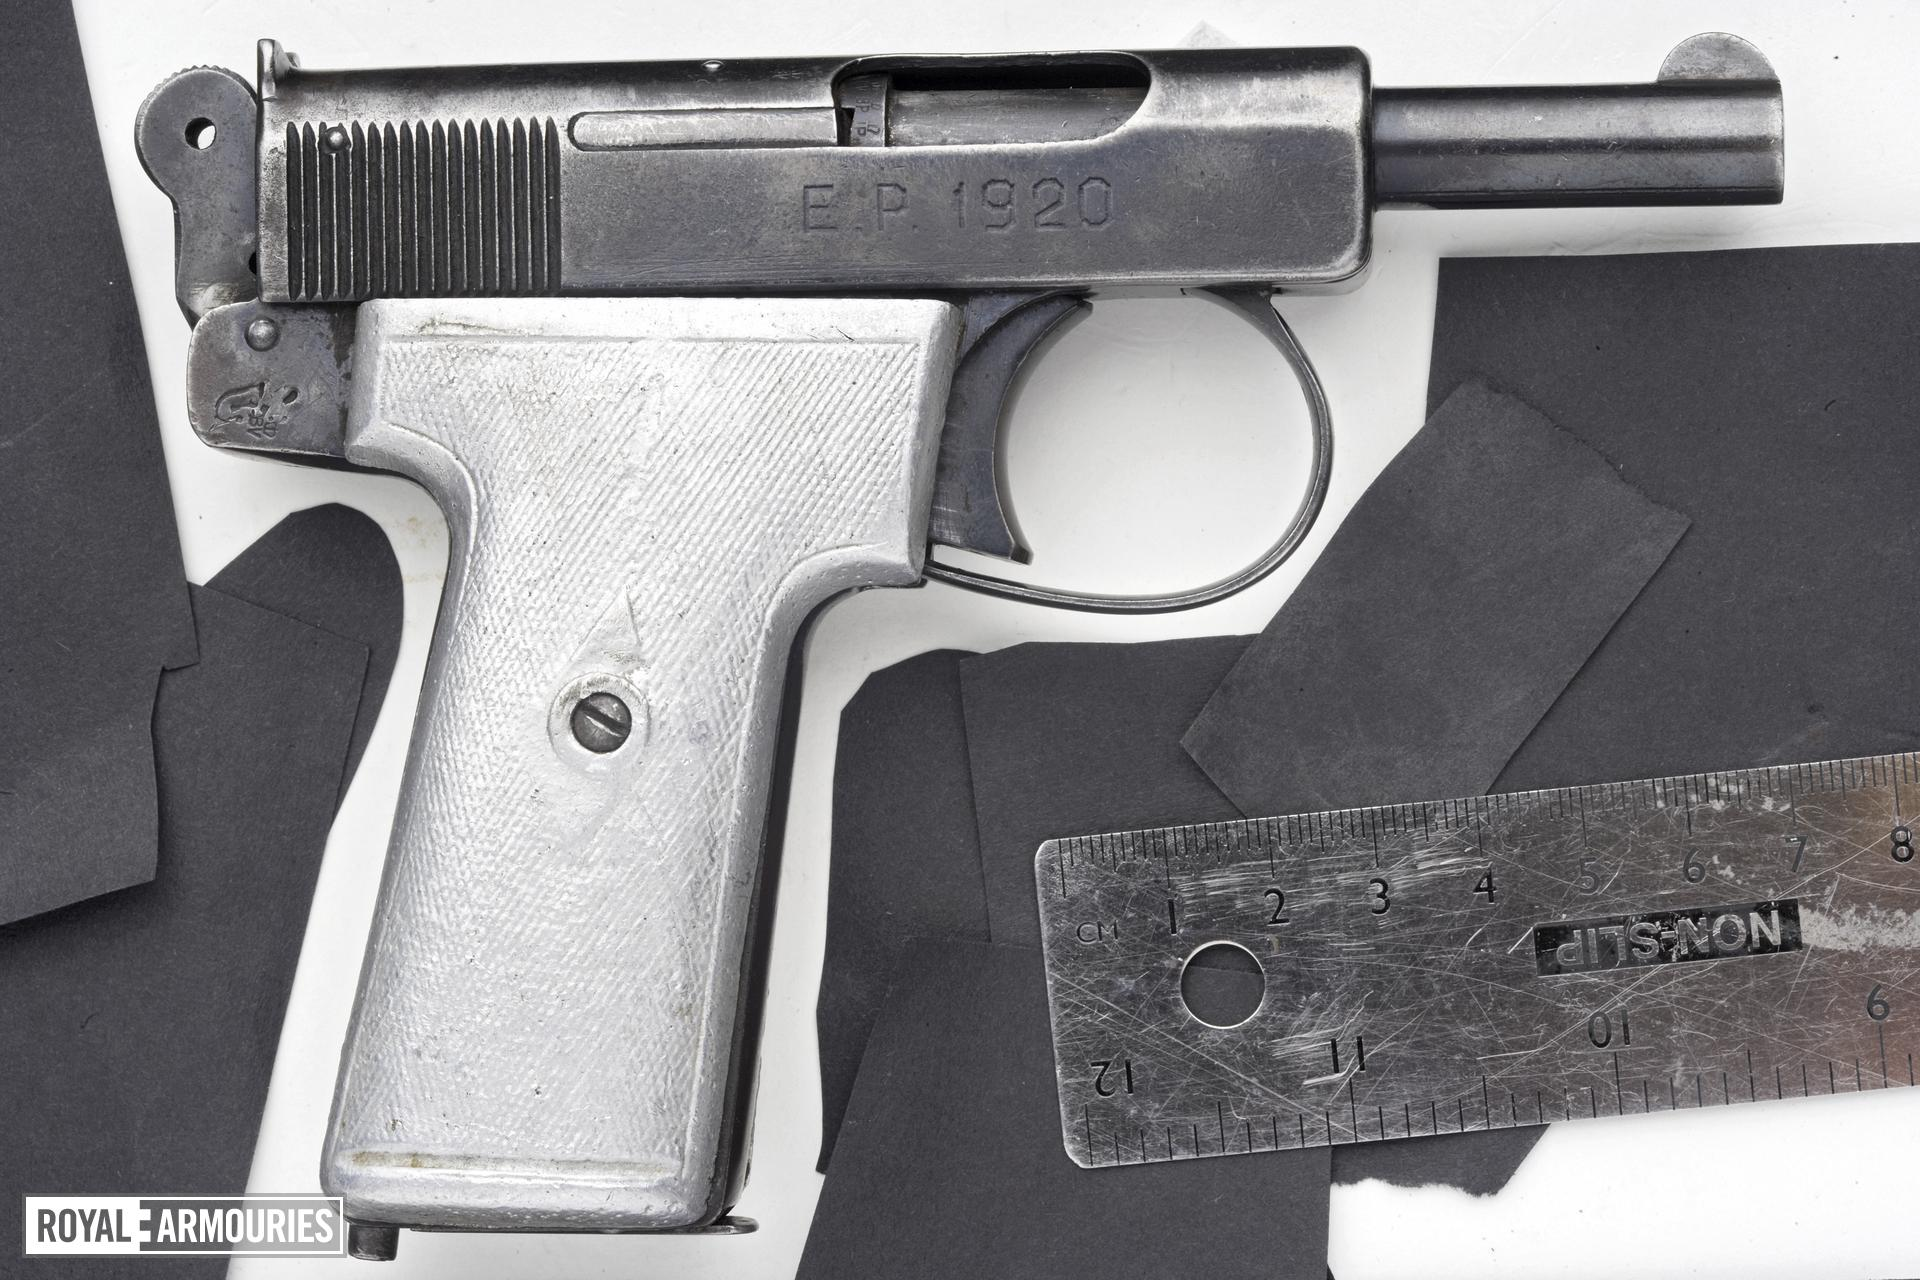 Centrefire self-loading pistol - Webley and Scott Model 1908